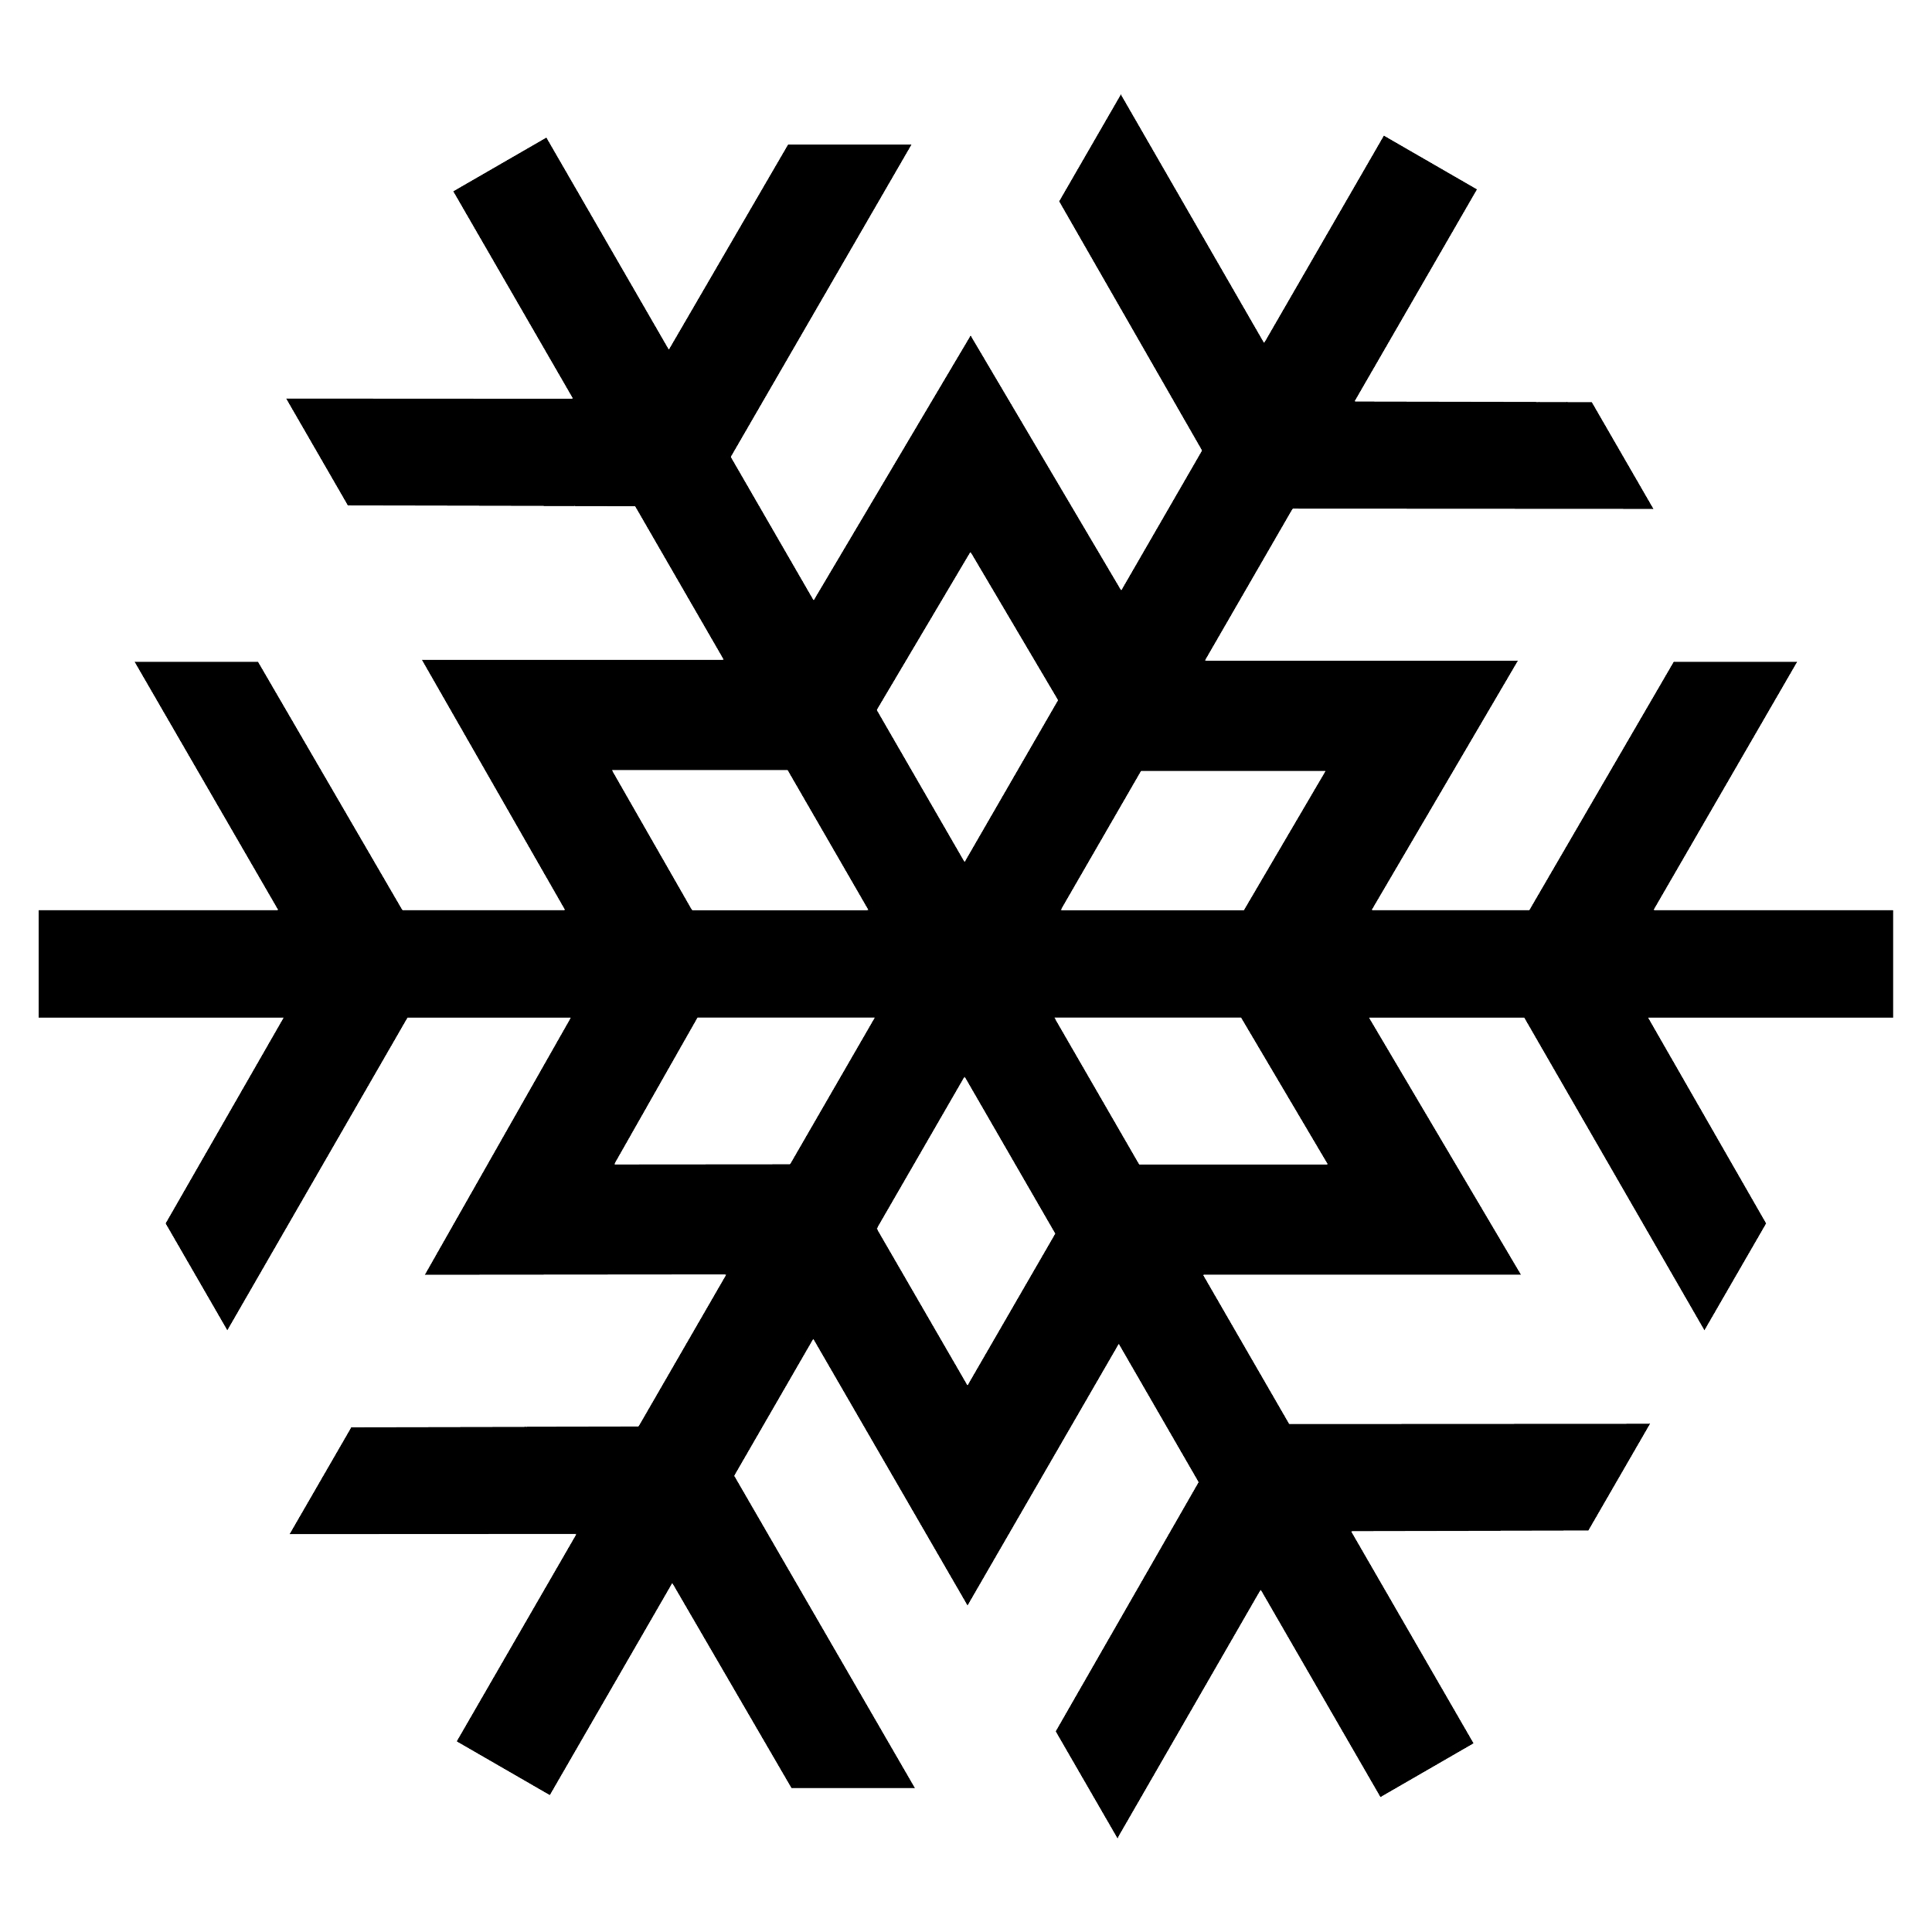 Solid snowflake clipart clip art transparent download 28+ Collection of Chunky Snowflake Clipart | High quality, free ... clip art transparent download